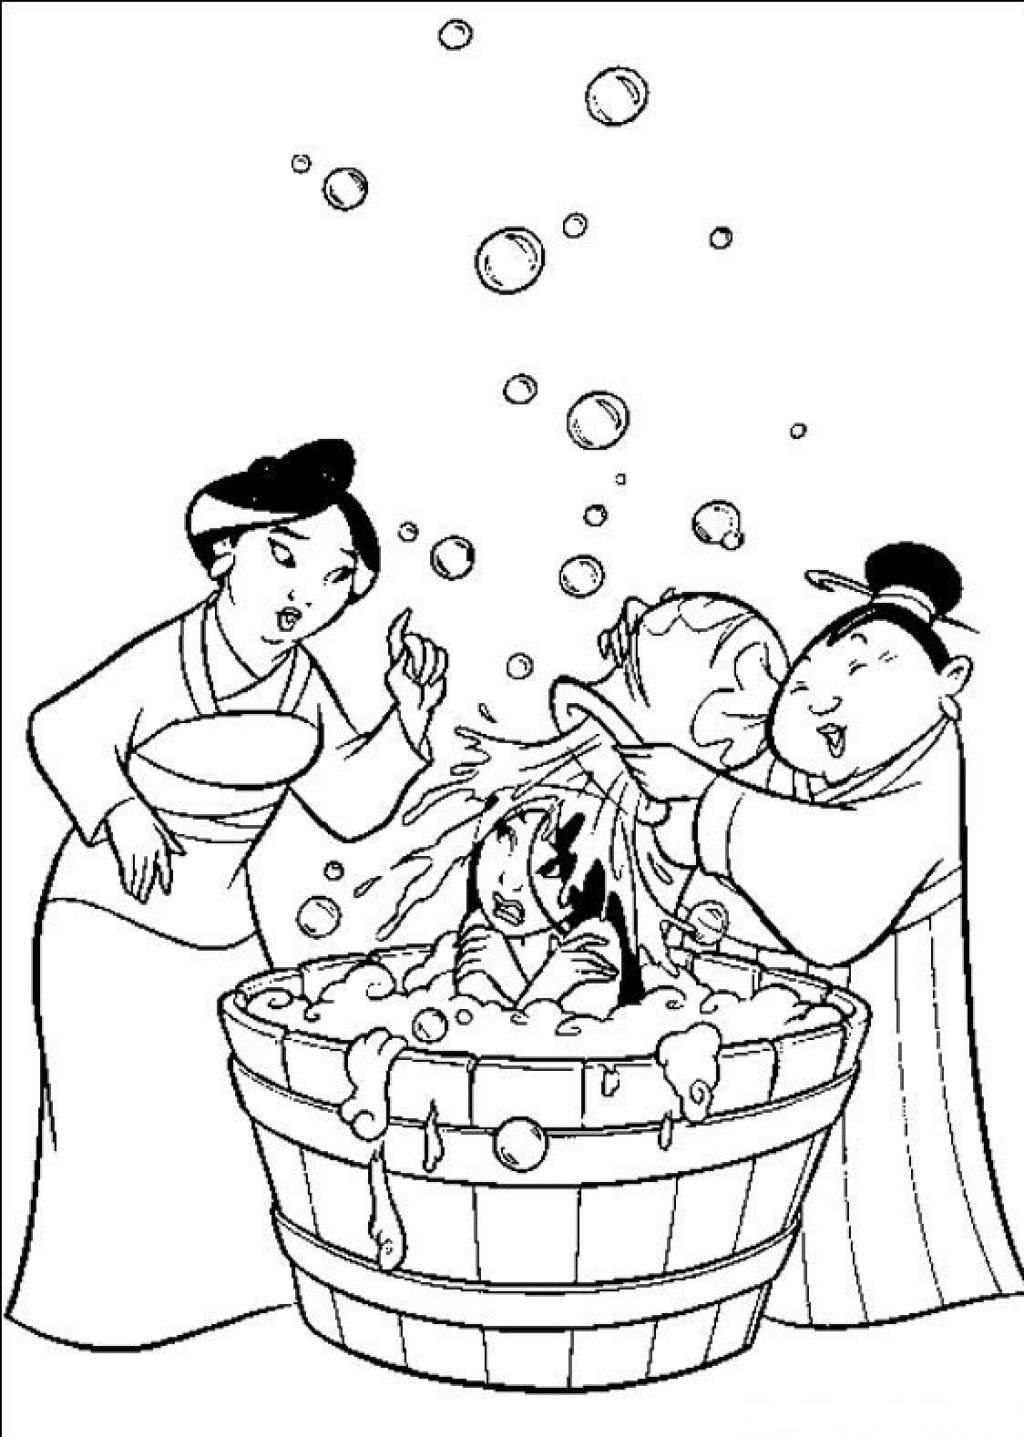 mulan coloring pages free mulan coloring pages to download and print for free pages coloring free mulan